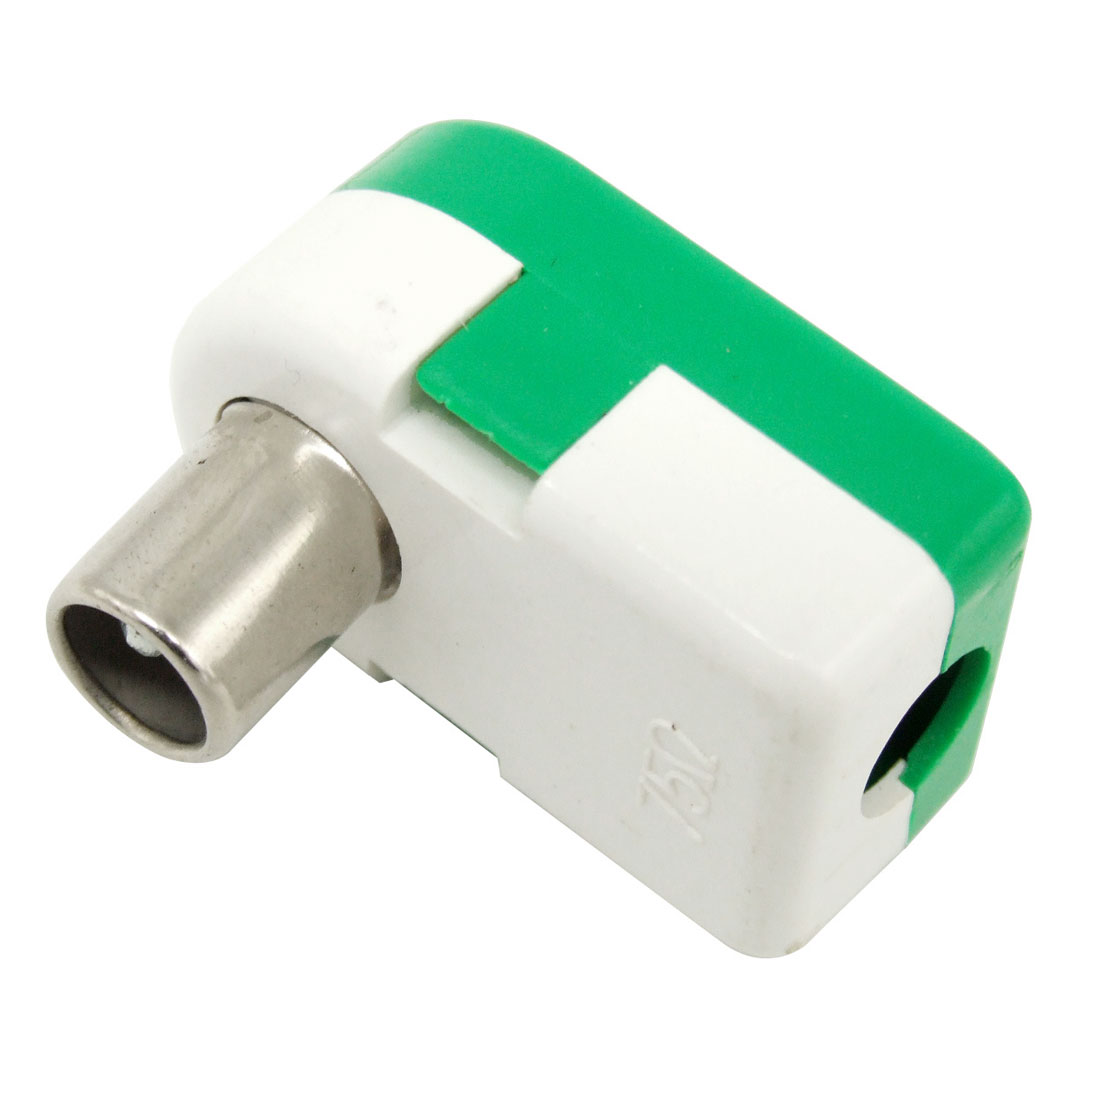 Right Angle TV Jack Aerial Antenna Connector Green